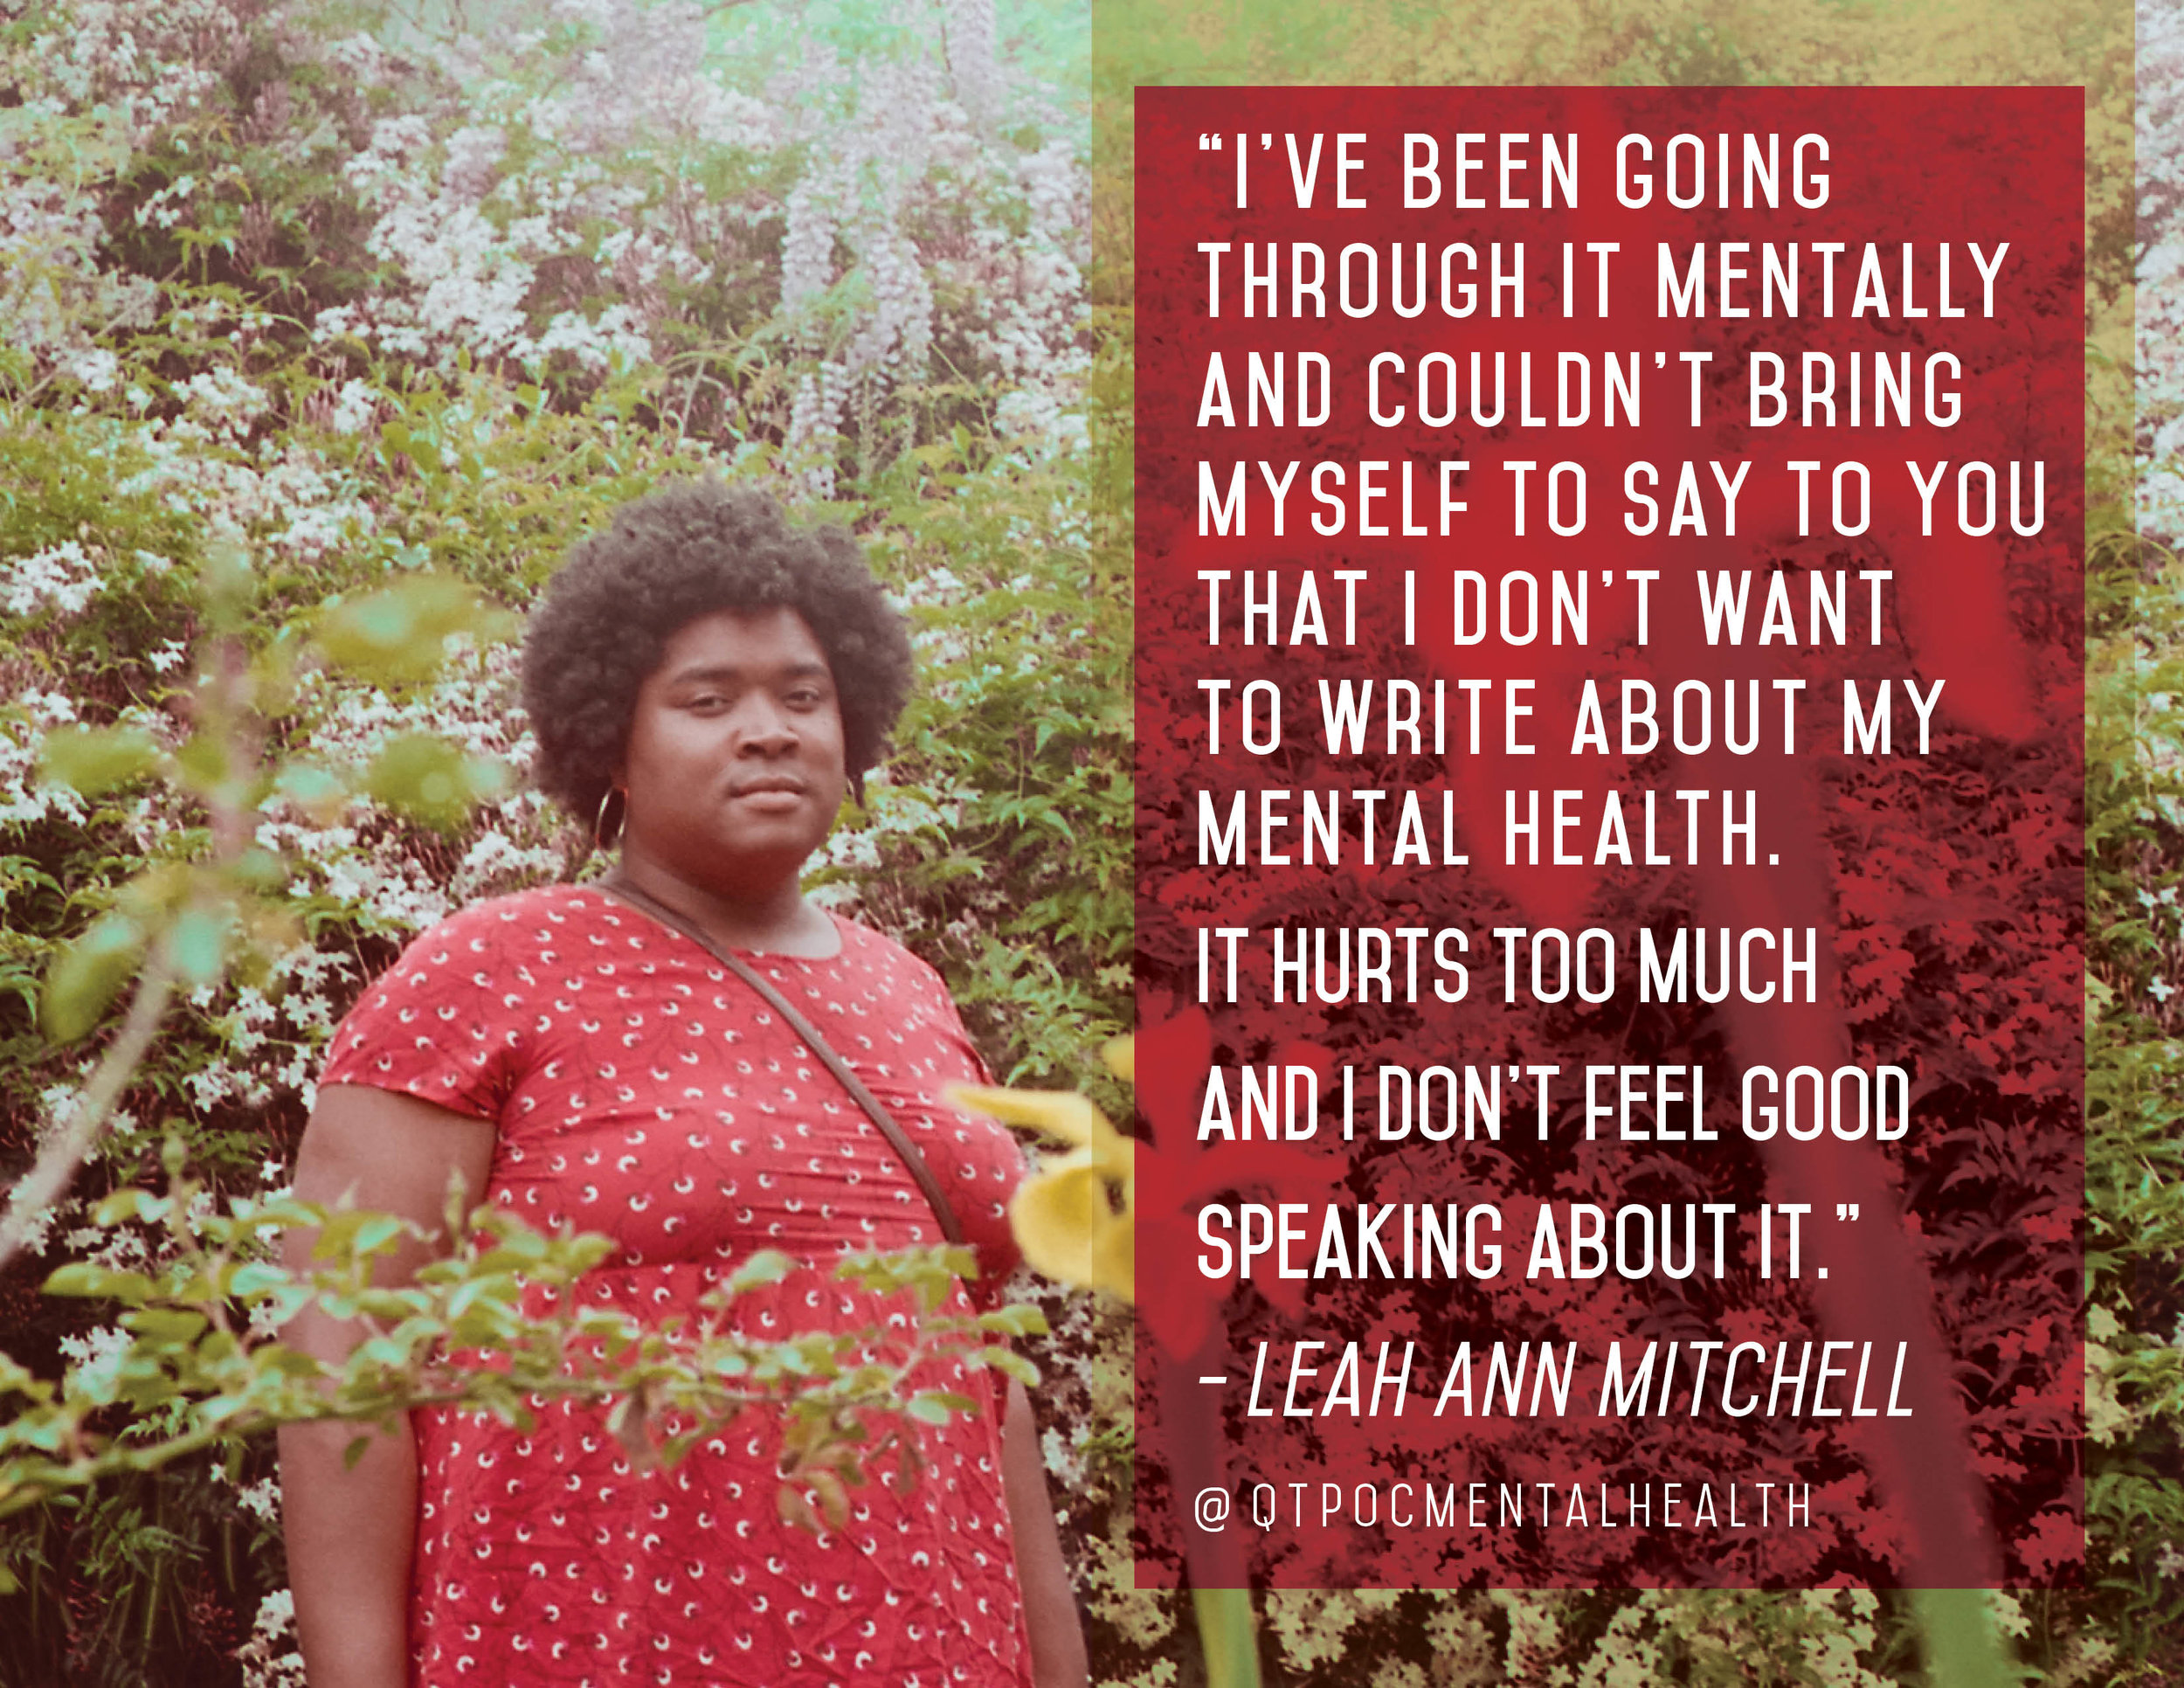 """Leah Ann Mitchell is an Afro-Latinx artist living and producing music in Oakland, CA. The image reads, """"I've been going through it mentally and couldn't bring myself to say to you that I don't want to write about my mental health. It hurts too much and I don't feel good speaking about it."""" You can check out Mitchell's work on  https://soundcloud.com/lamfemmebear  and their Instagram:  @lamfemmebear  Photo by: Eve Moreno-Luz"""